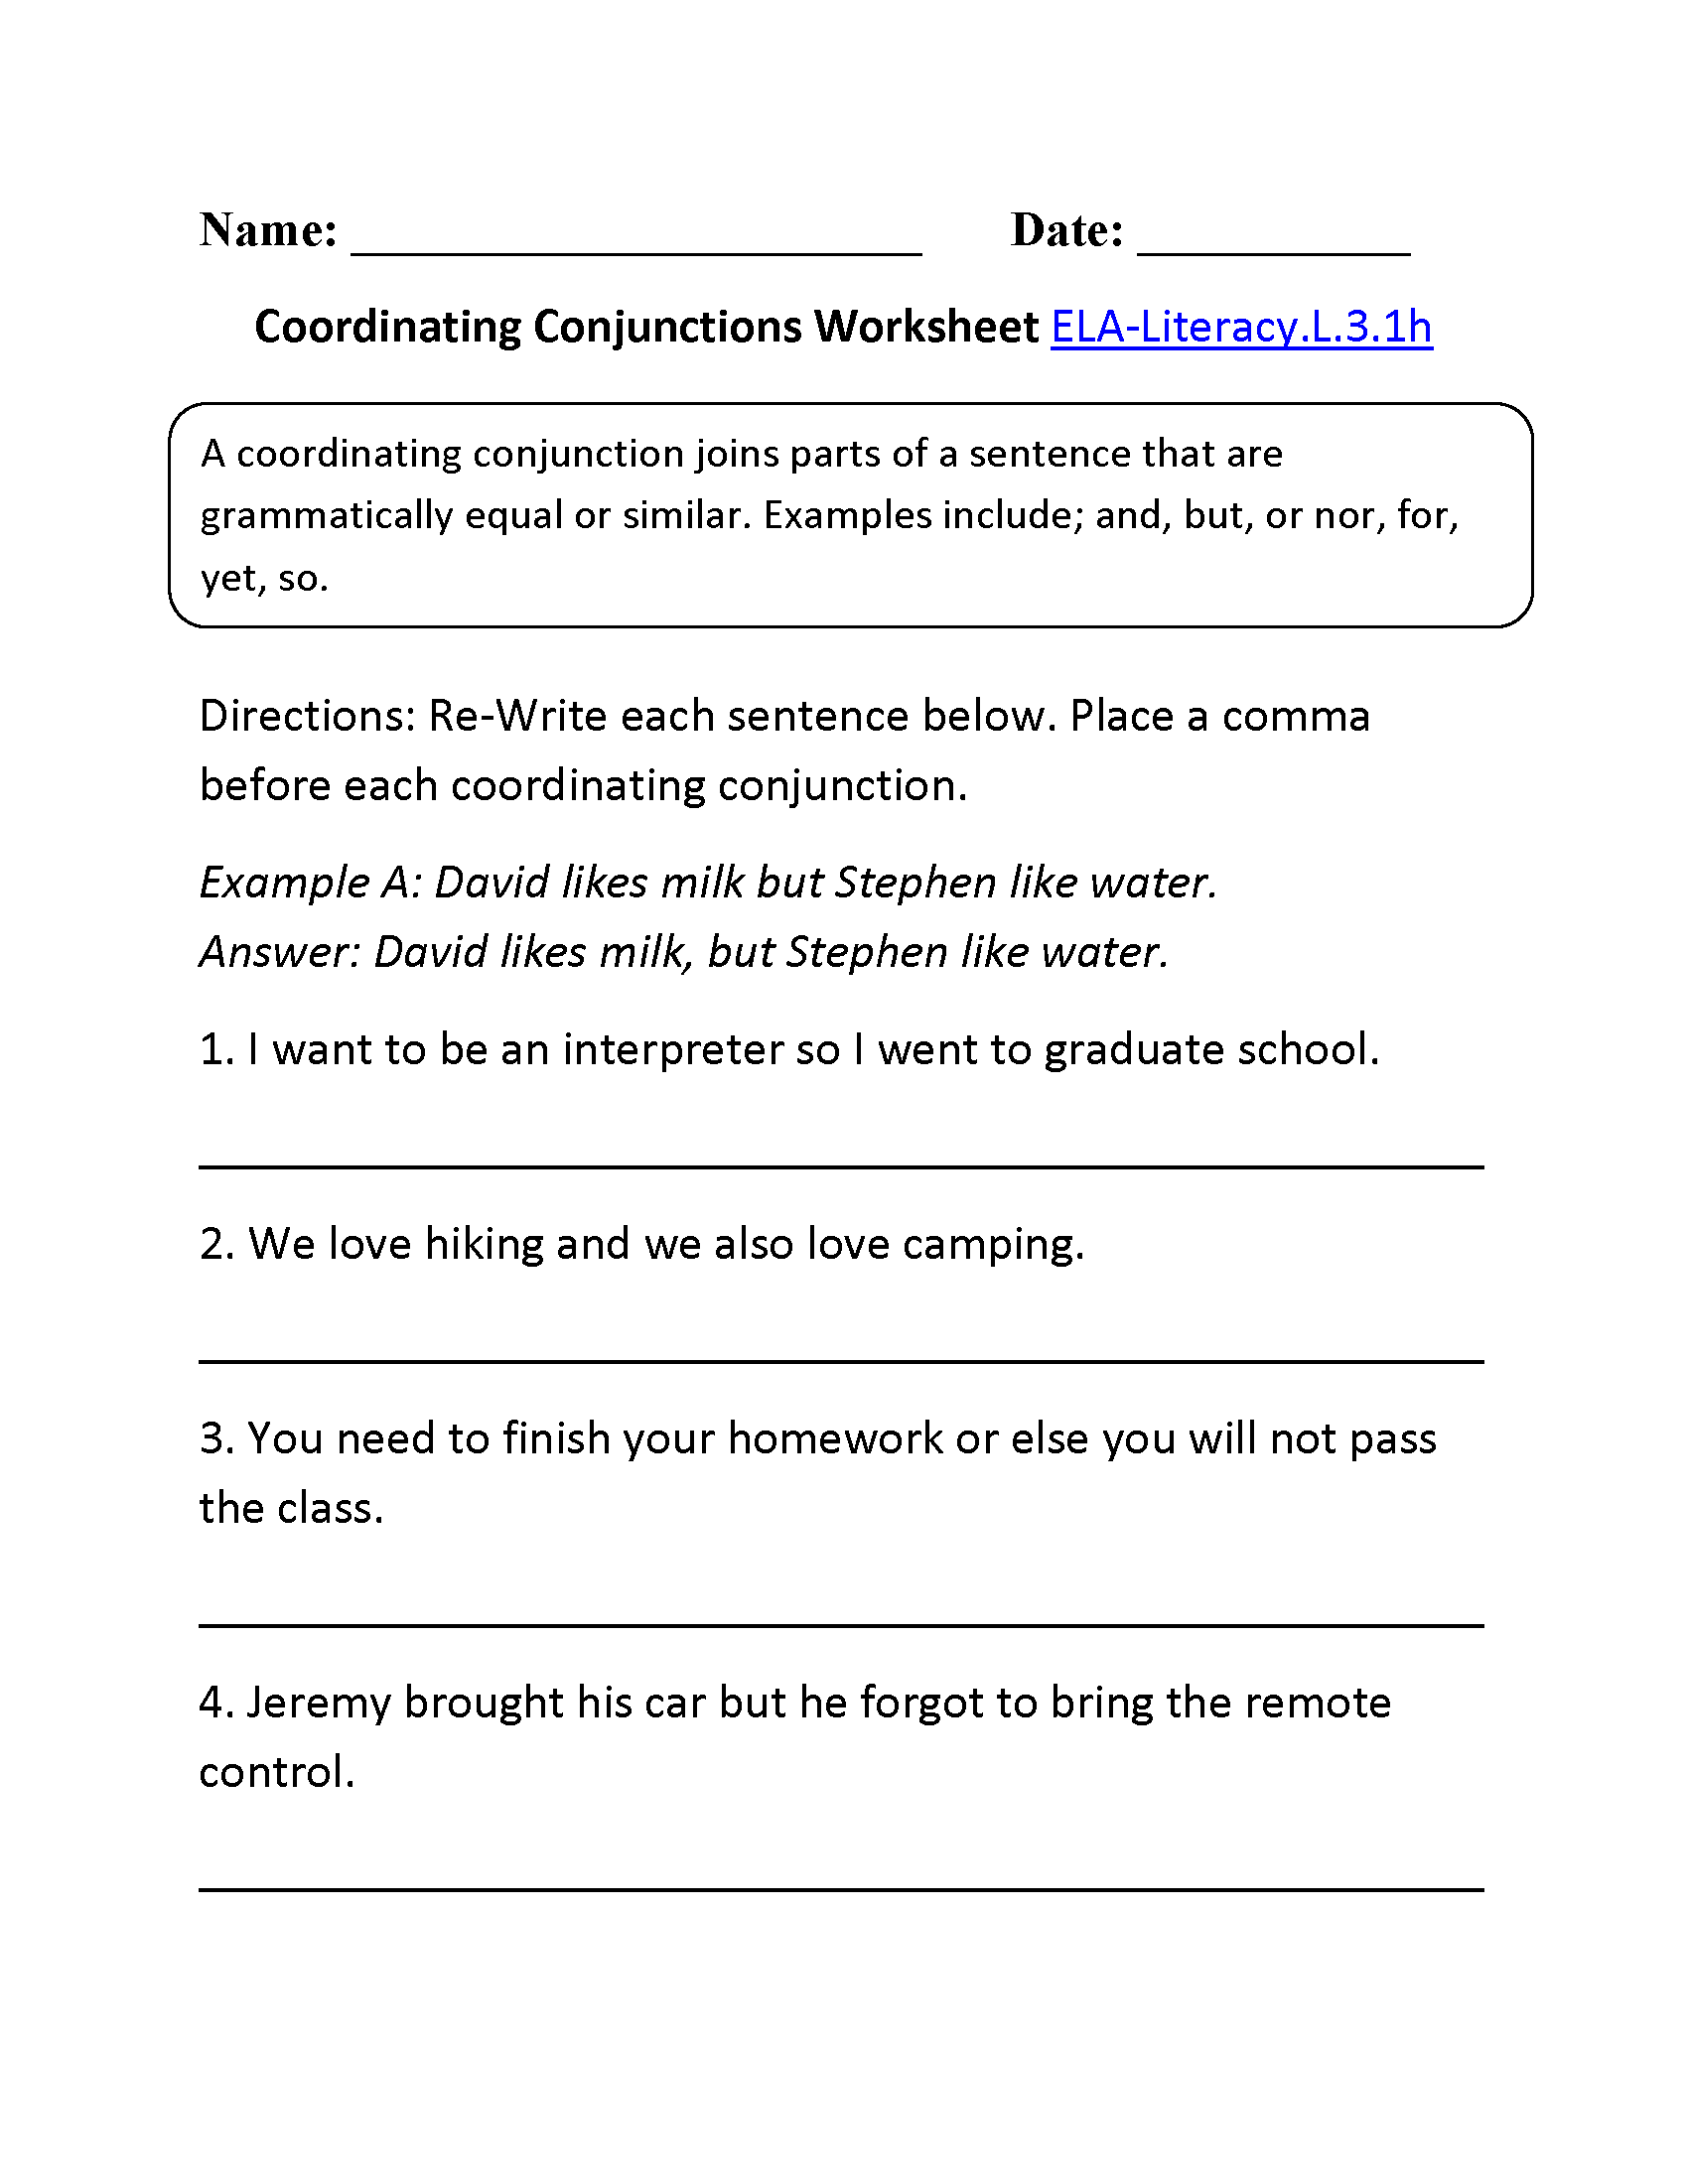 ... Conjunctions Worksheet 2 ELA-Literacy.L.3.1h Language Worksheet